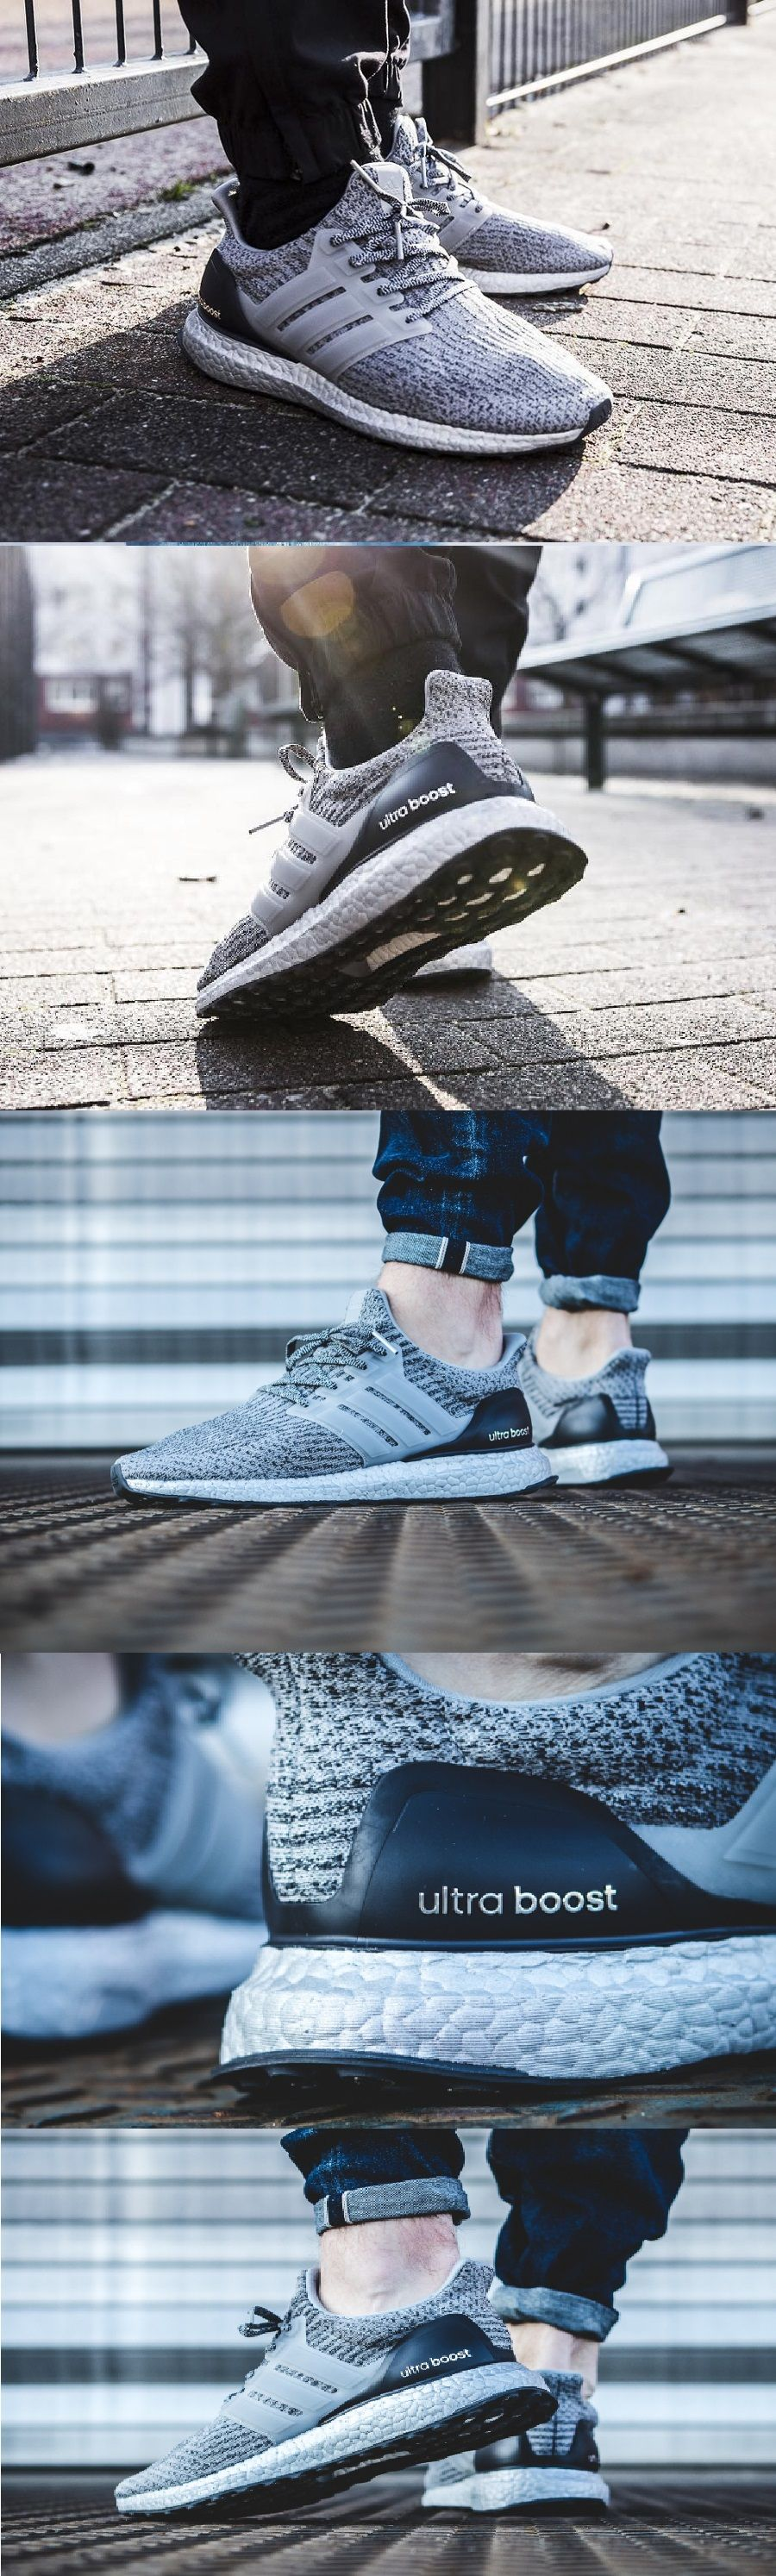 Adidas Ultra Boost 3 0 SilverPack